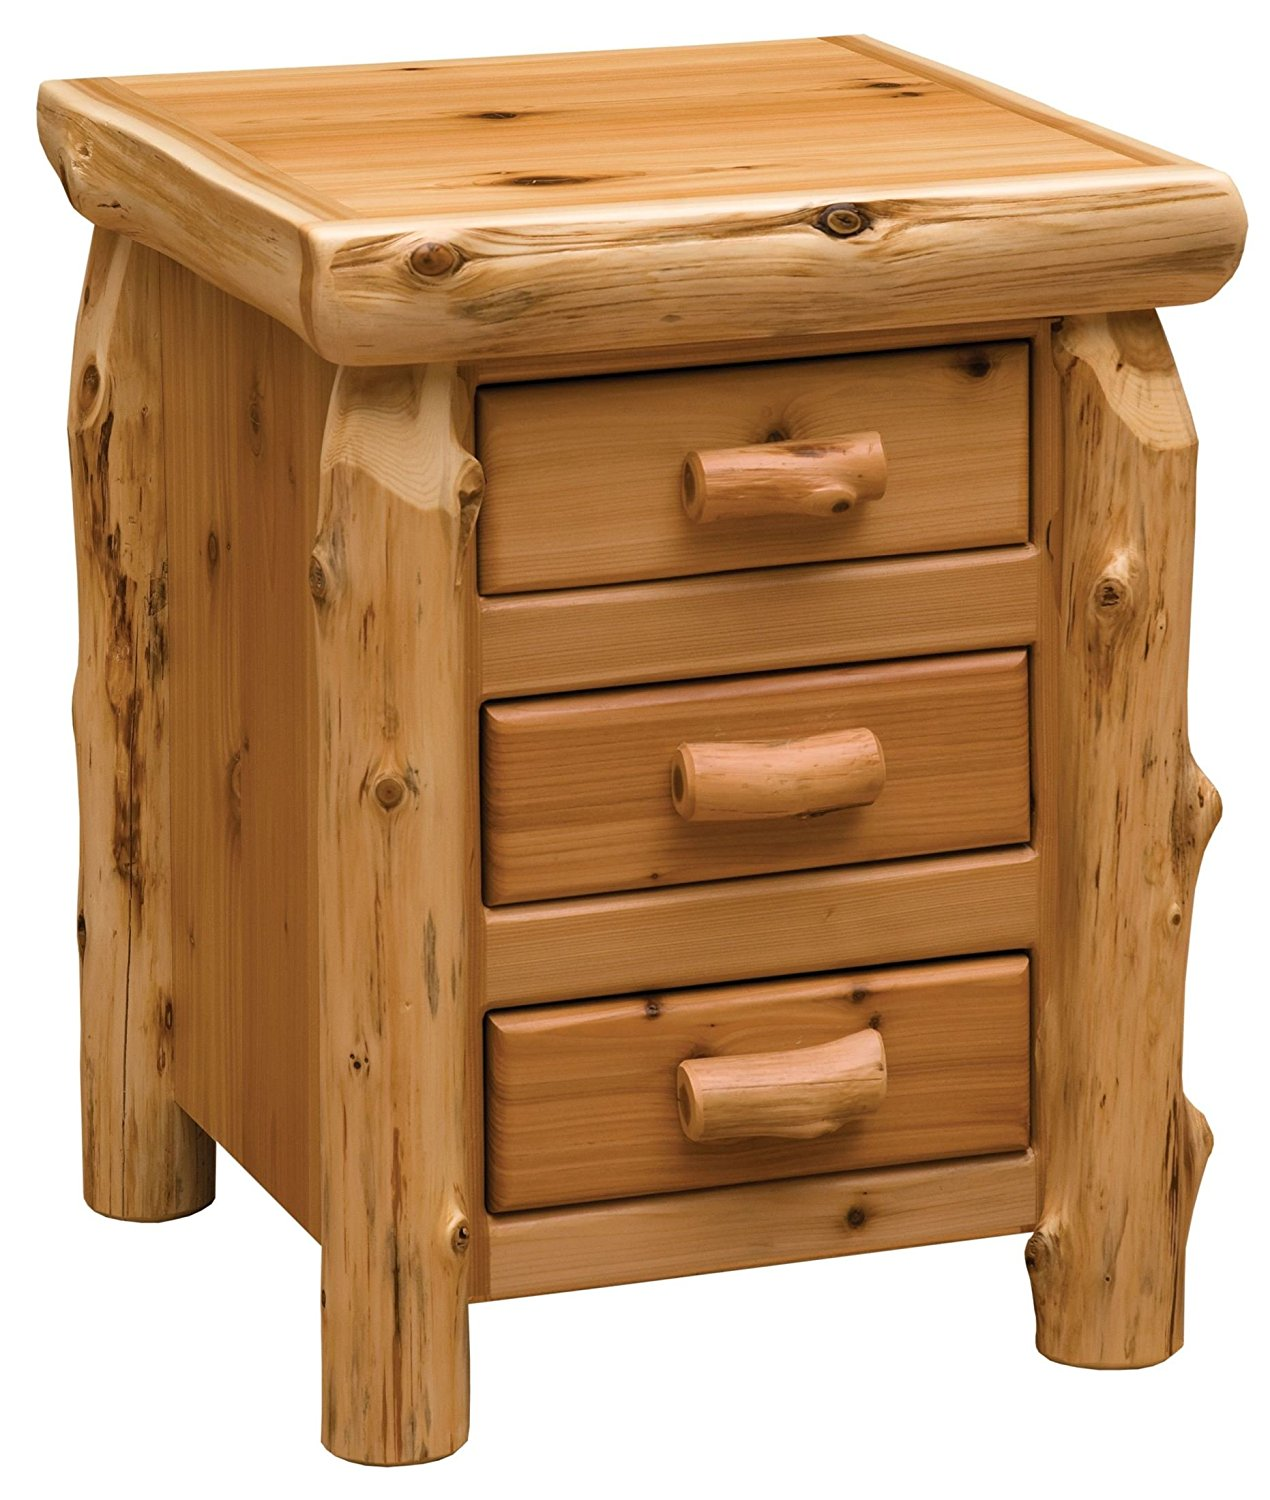 Recycle Furniture Cheap Free Furniture Recycle Find Free Furniture Recycle Deals On